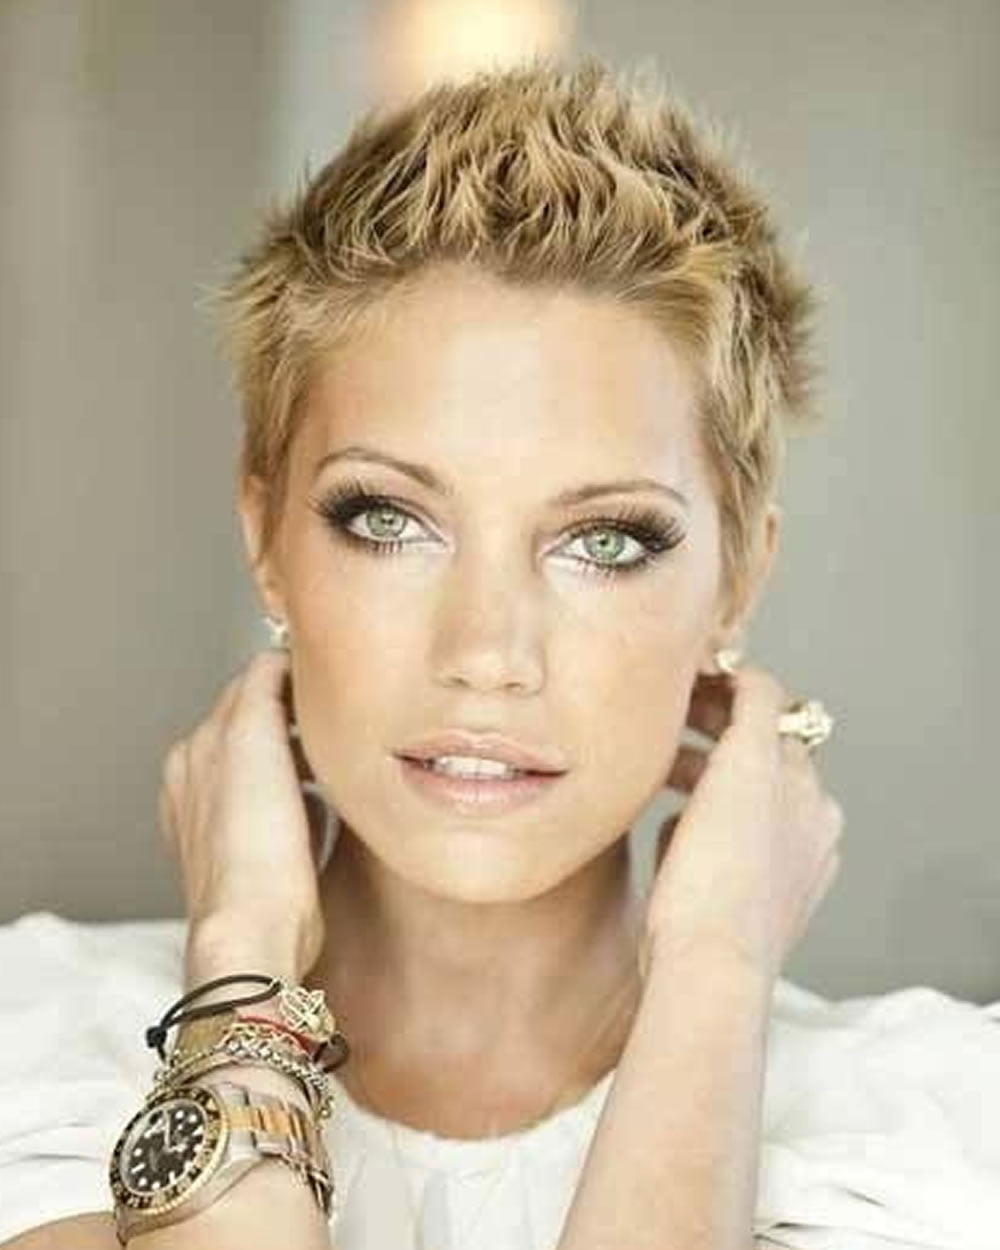 Fashionable Tousled Pixie Hairstyles With Super Short Undercut For Super Very Short Pixie Haircuts & Hair Colors For  (View 12 of 20)